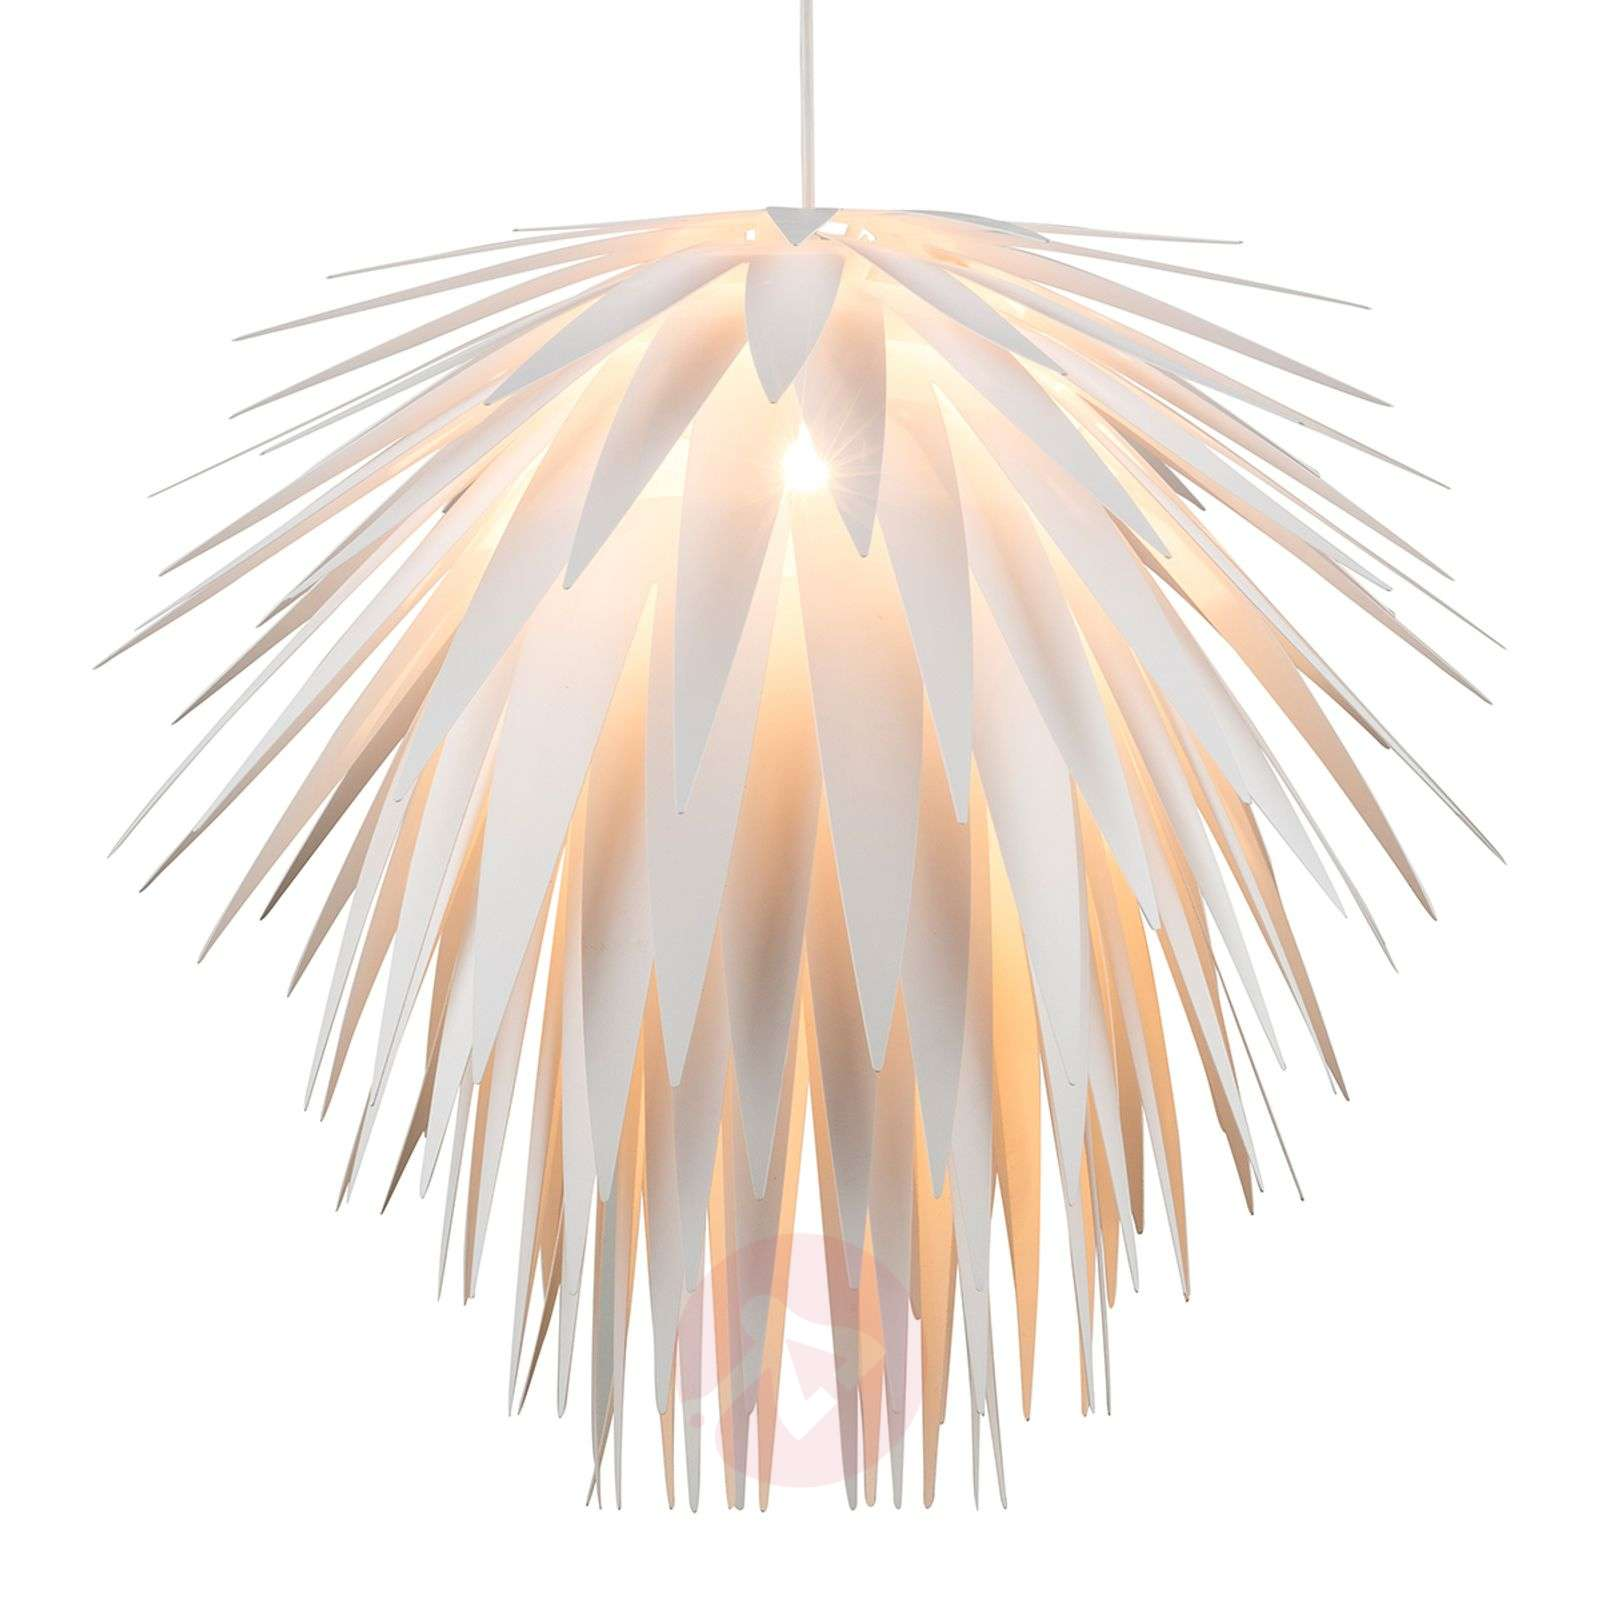 Fascinating hanging light Siw-4014865-01